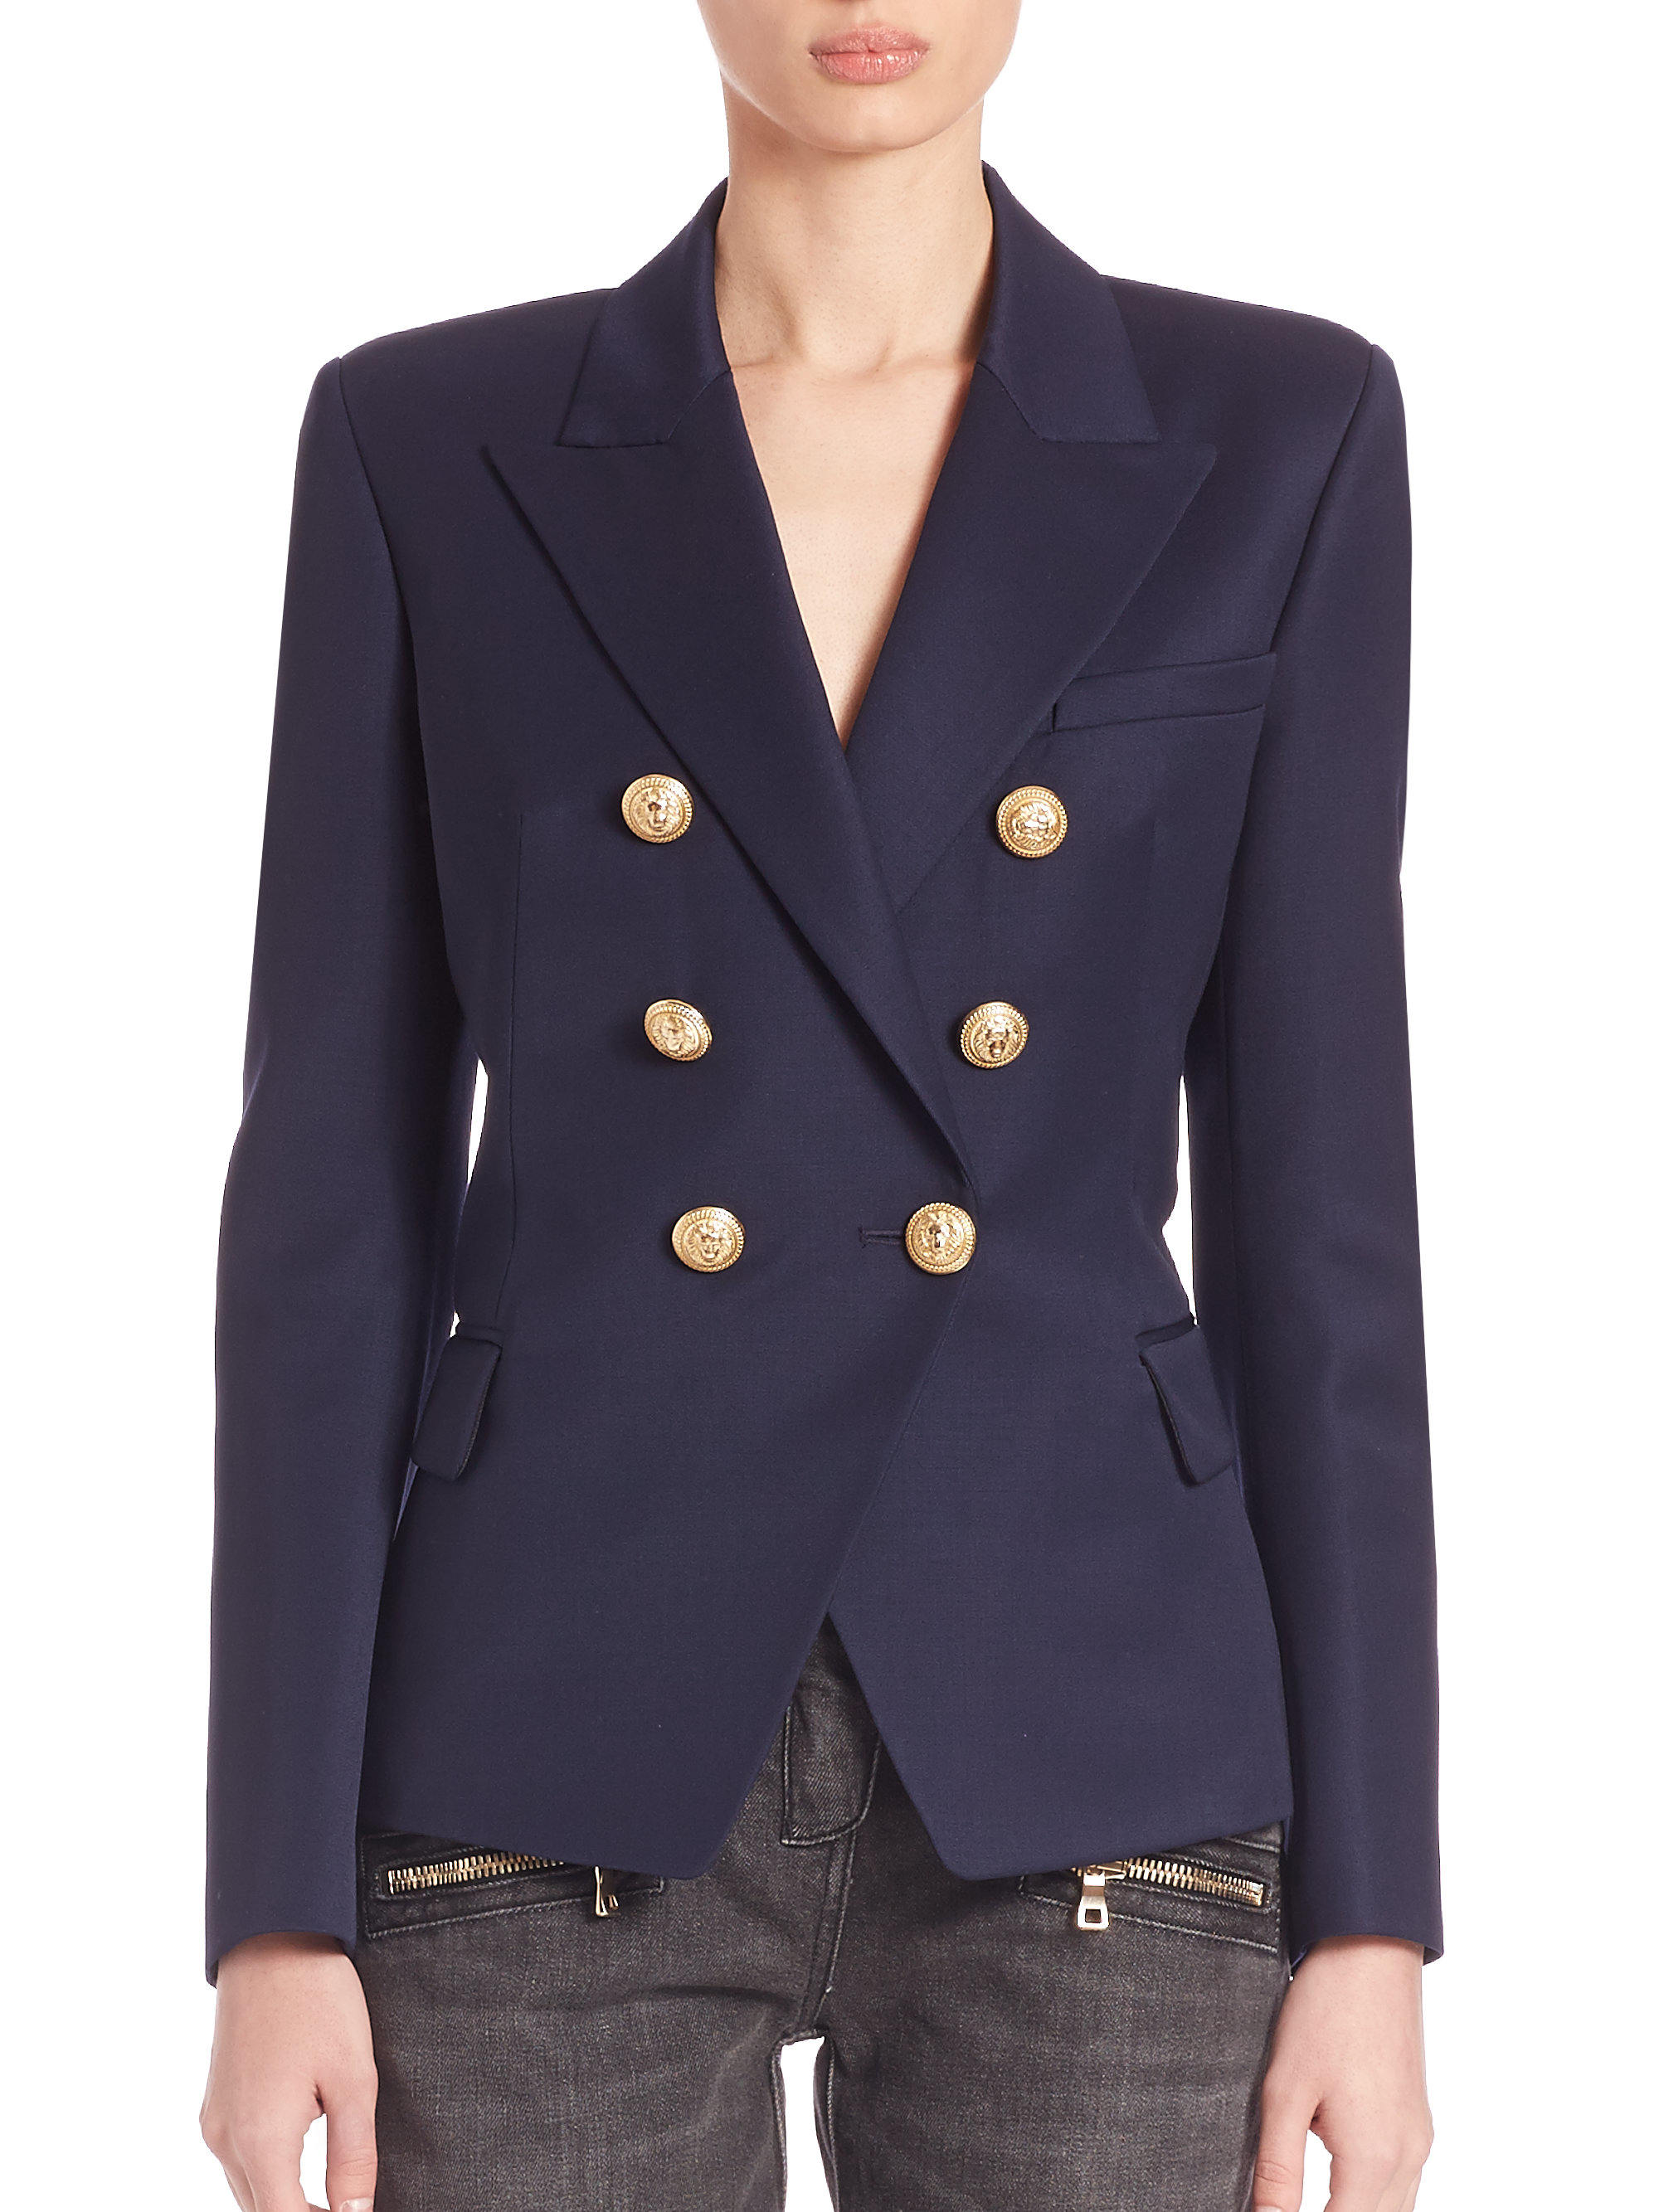 Womens Navy Blue Wool Blazer Hardon Clothes